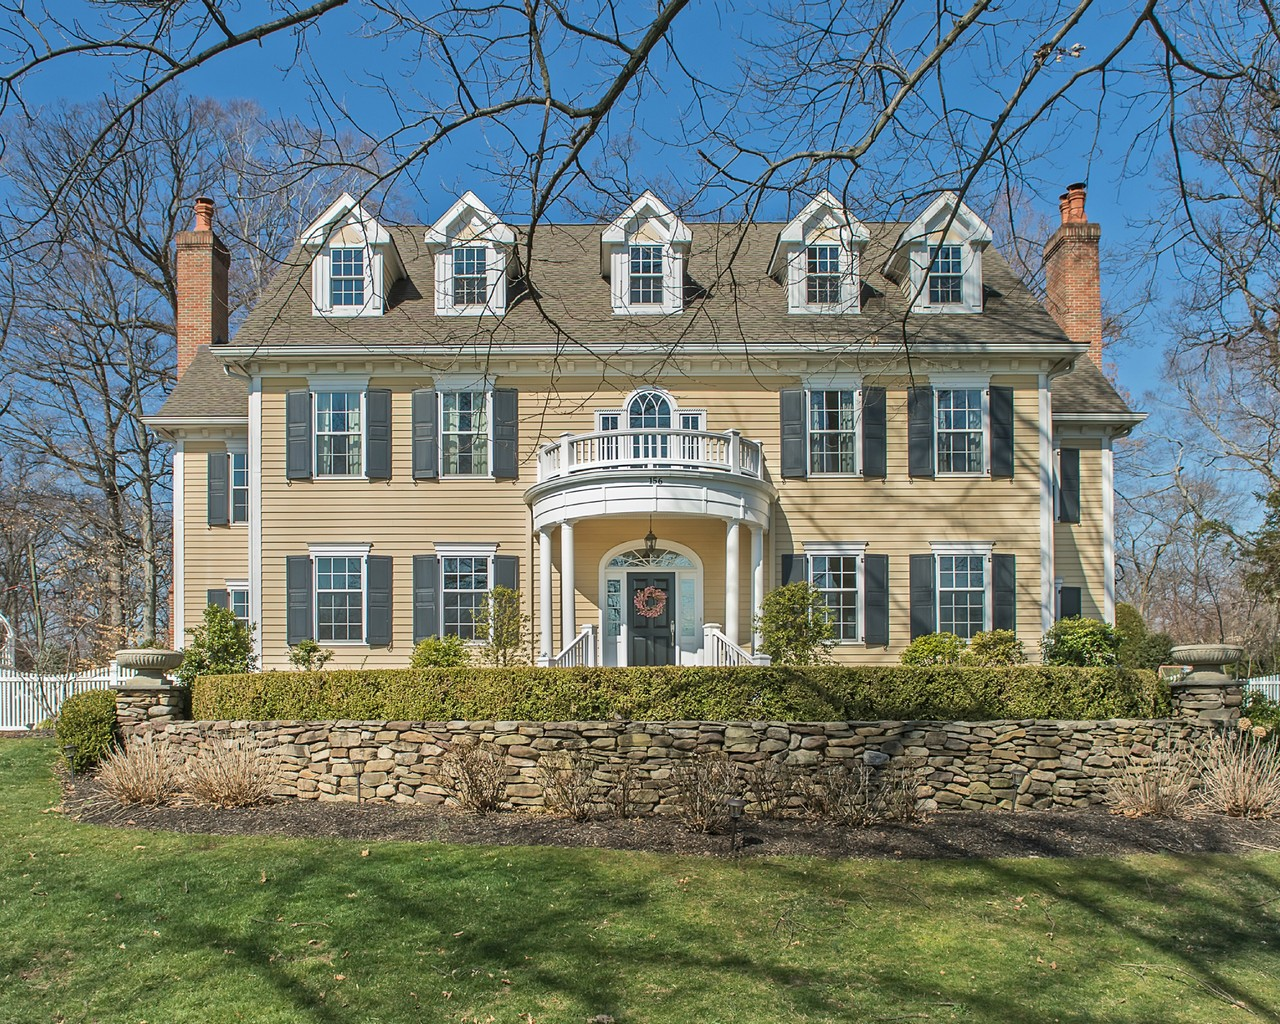 Maison unifamiliale pour l Vente à Stately Glen Ridge Center Hall Colonial 156 Ridgewood Avenue Glen Ridge, New Jersey, 07028 États-Unis